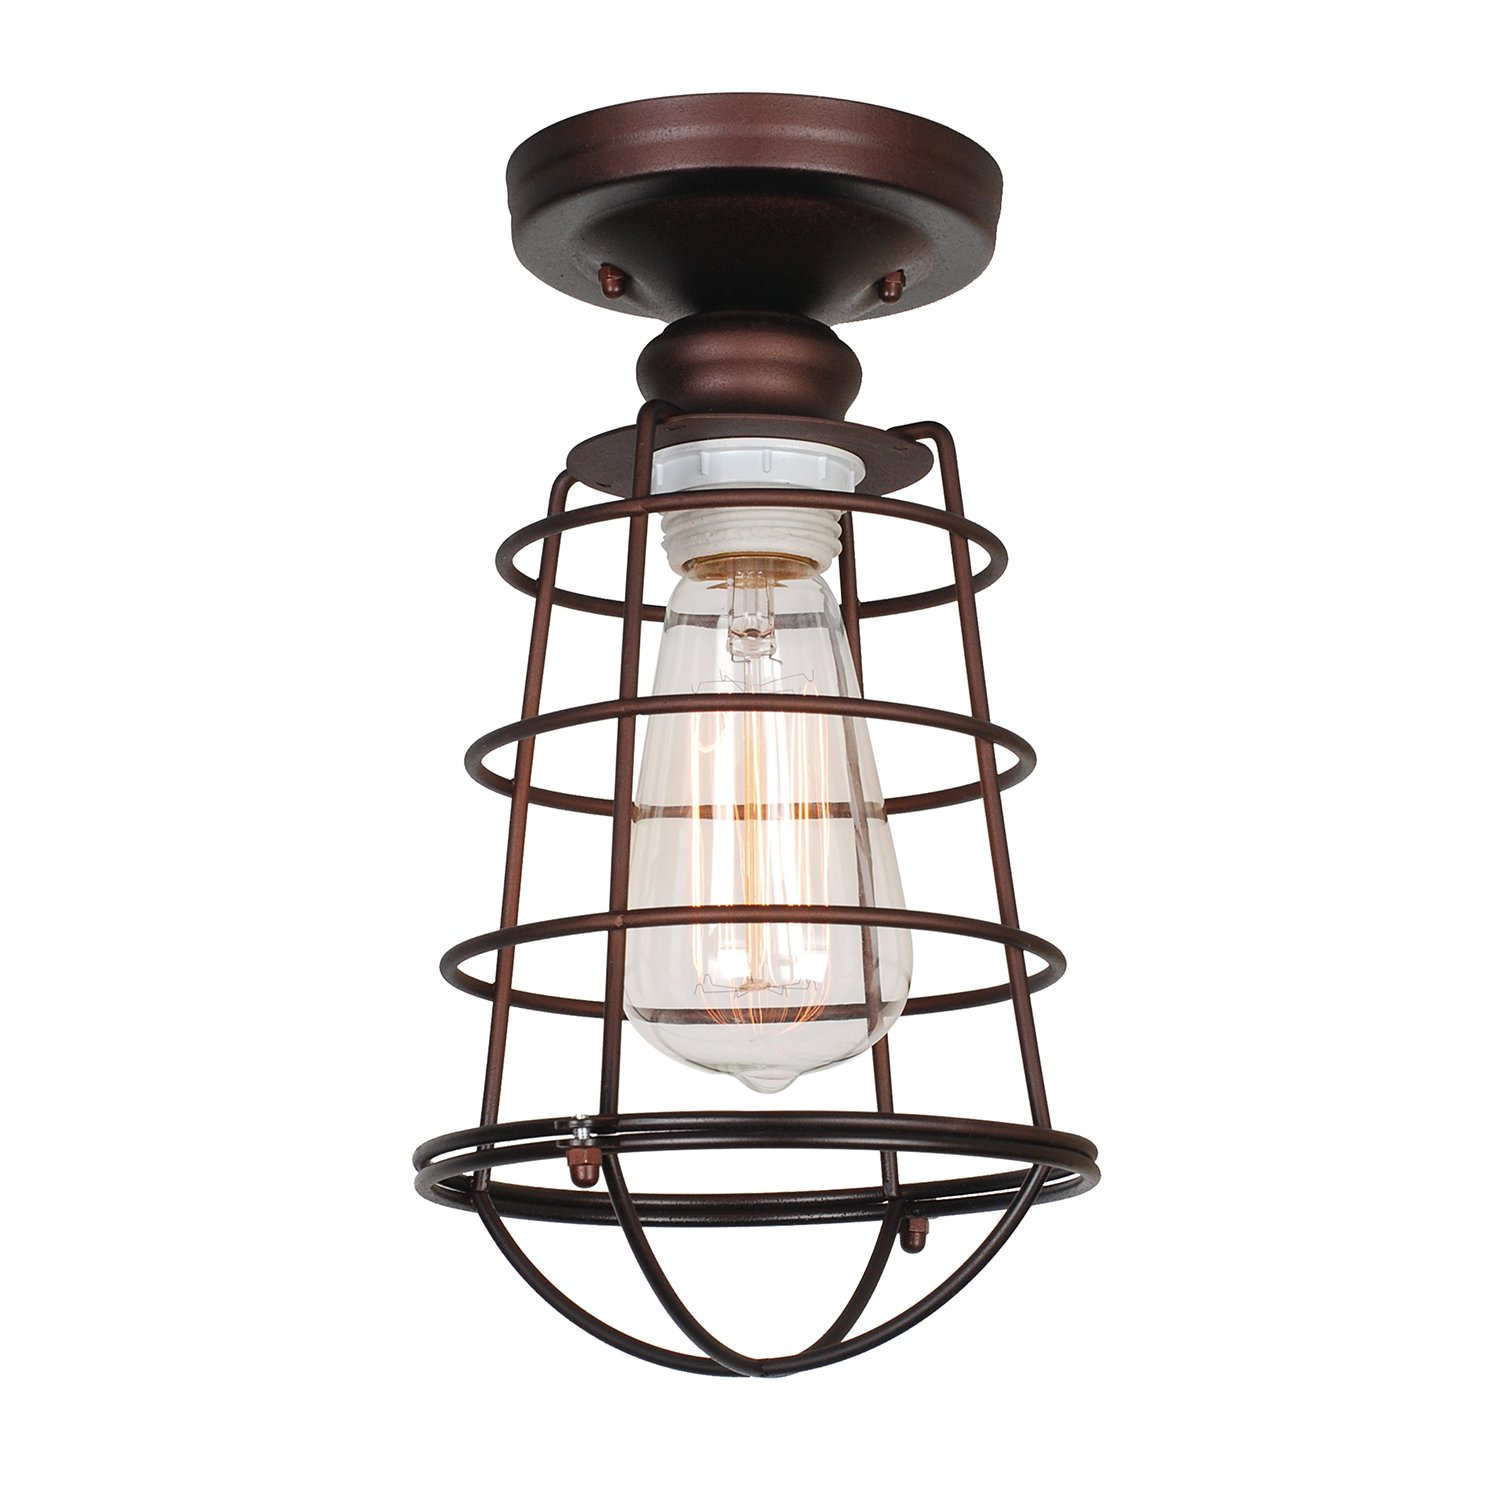 grid bulb metallic ceiling of light contemporary flush fresh mount bronze aged lights industrial